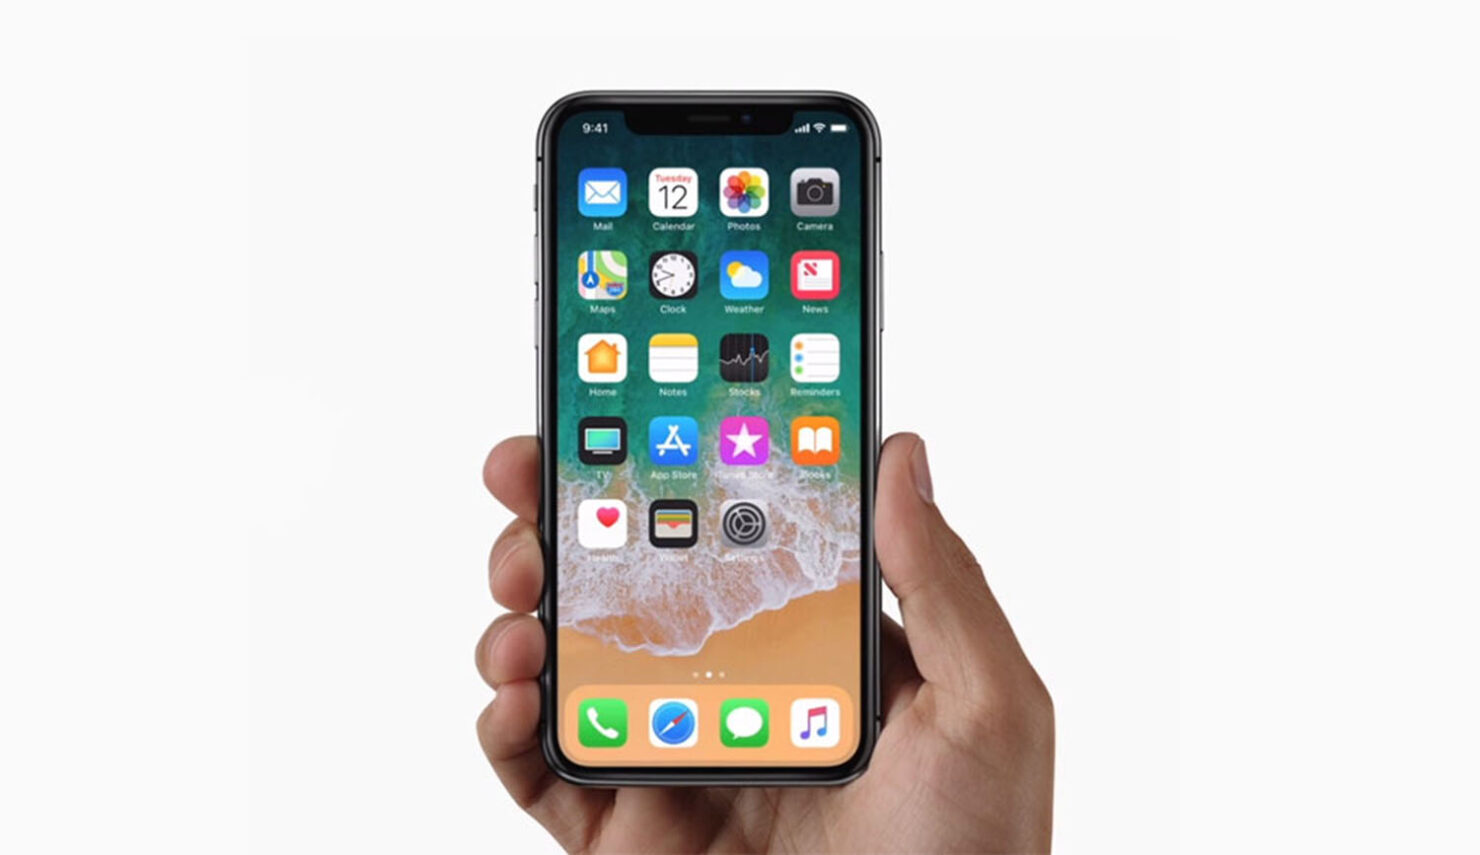 Smaller 5.4-inch iPhone 12 to Feature Same Size as an iPhone 8 [Rumor]